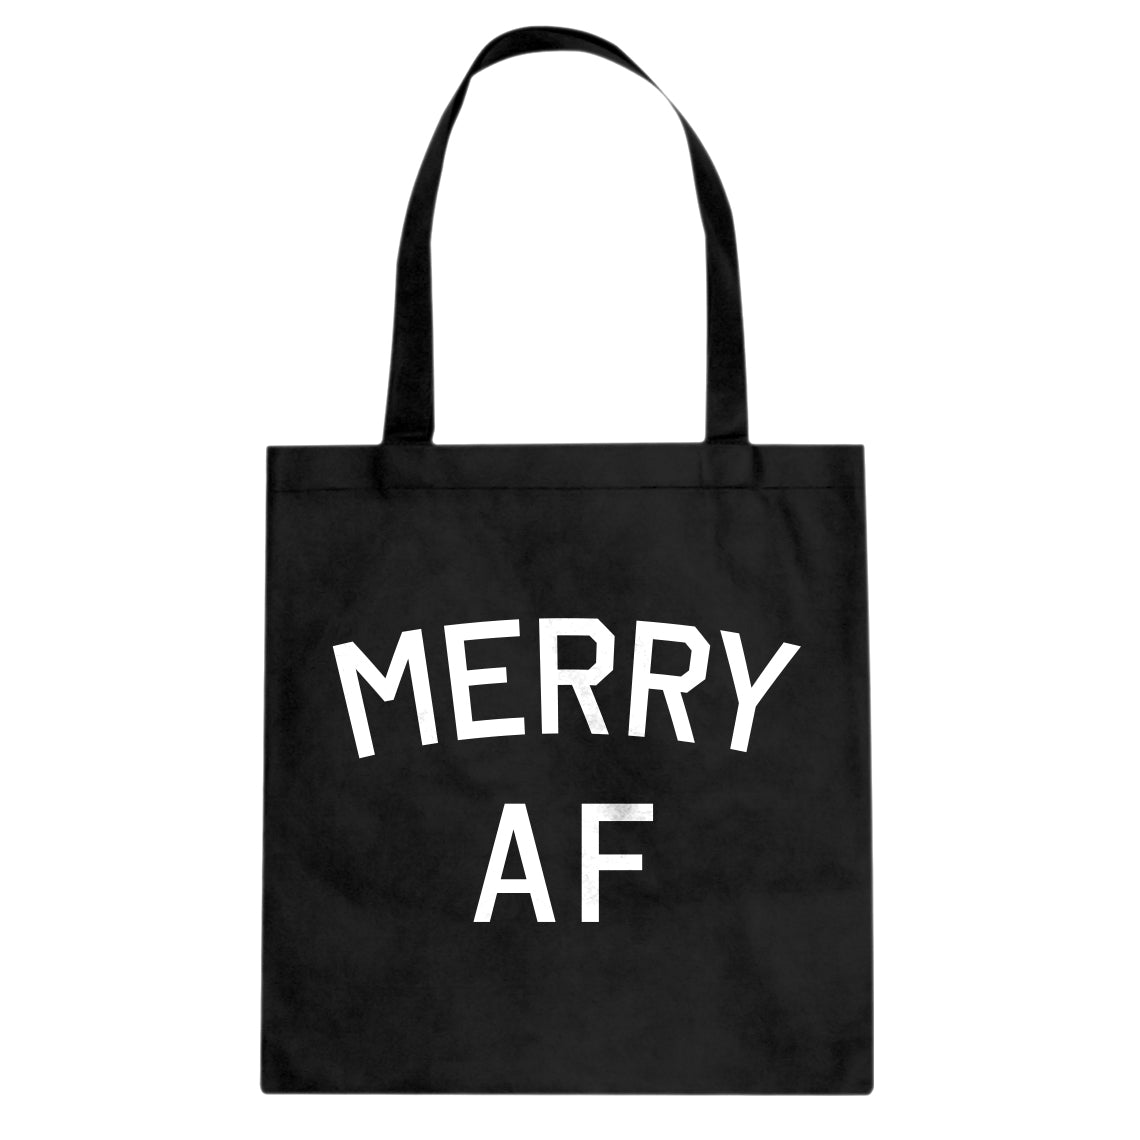 Merry AF Cotton Canvas Tote Bag